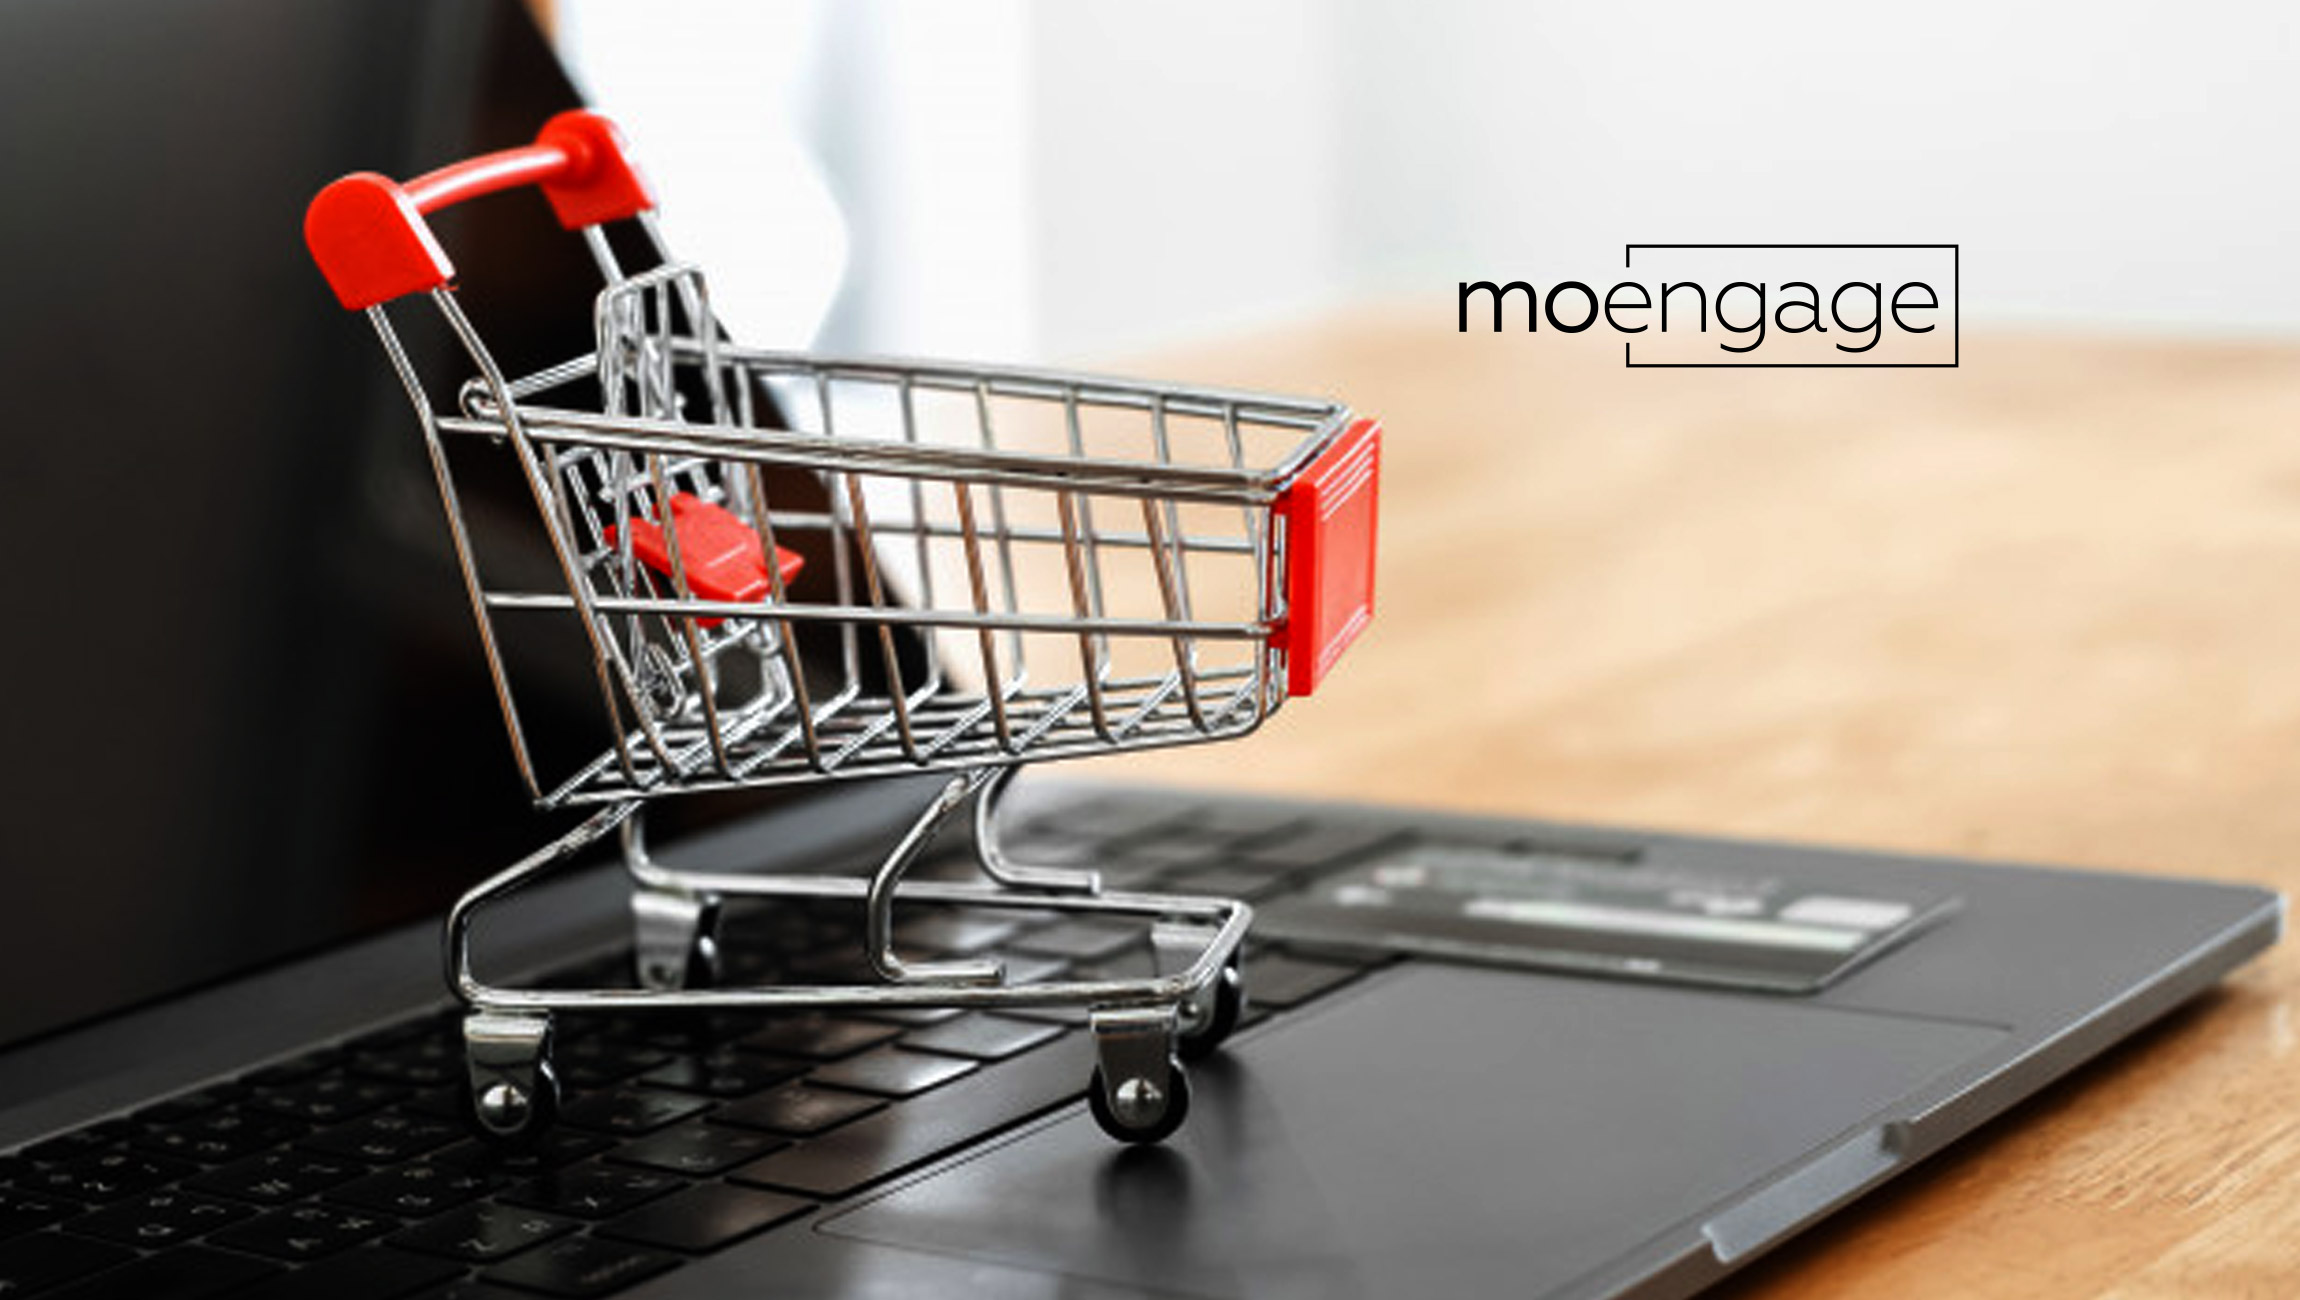 MoEngage Inc. Achieves Amazon Web Services Retail Experience Competency Status